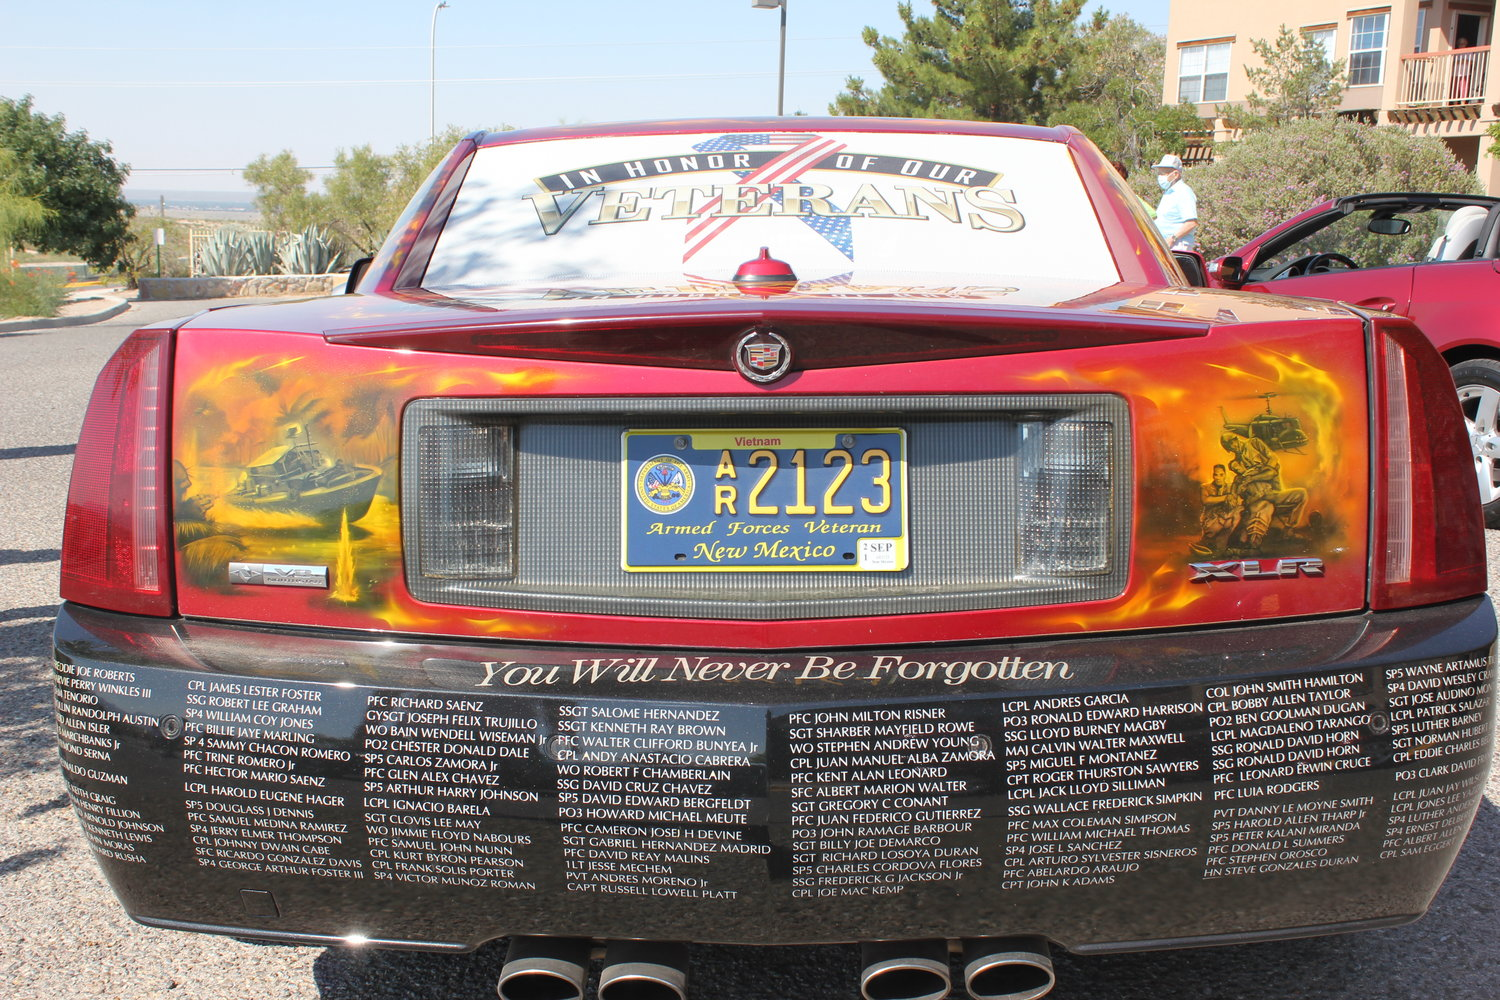 David Cheek's 2004 Cadillac includes the names of all of the southern New Mexico veterans who lost their lives in the Vietnam War.